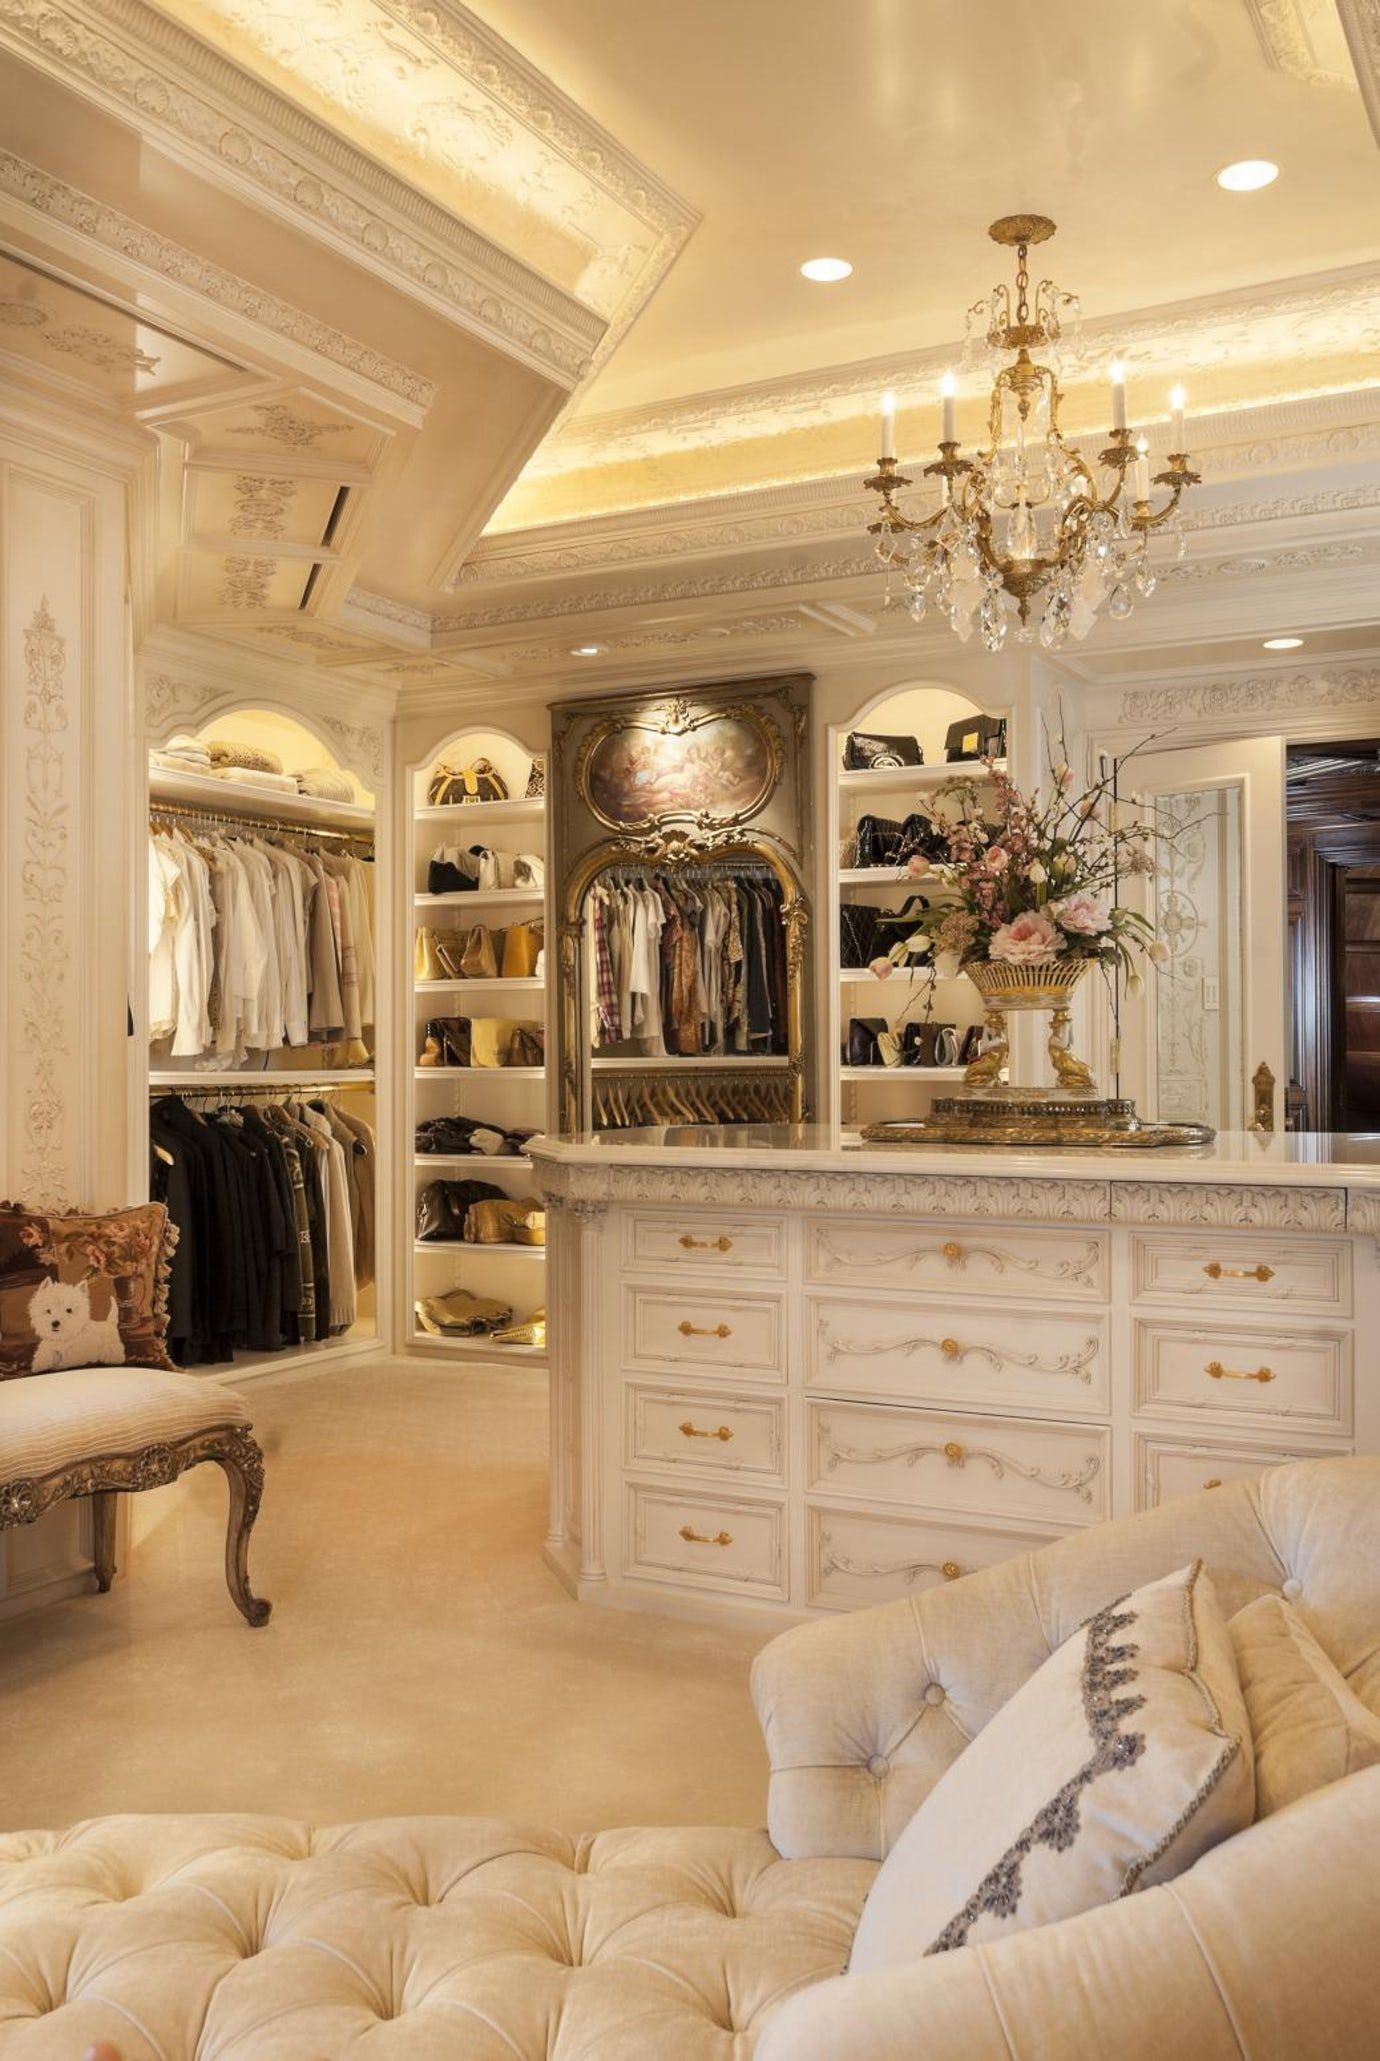 Interior designer closet portfolio sherry hayslip interiors  design associates inc dering hall also best mansion dreams images in rh pinterest